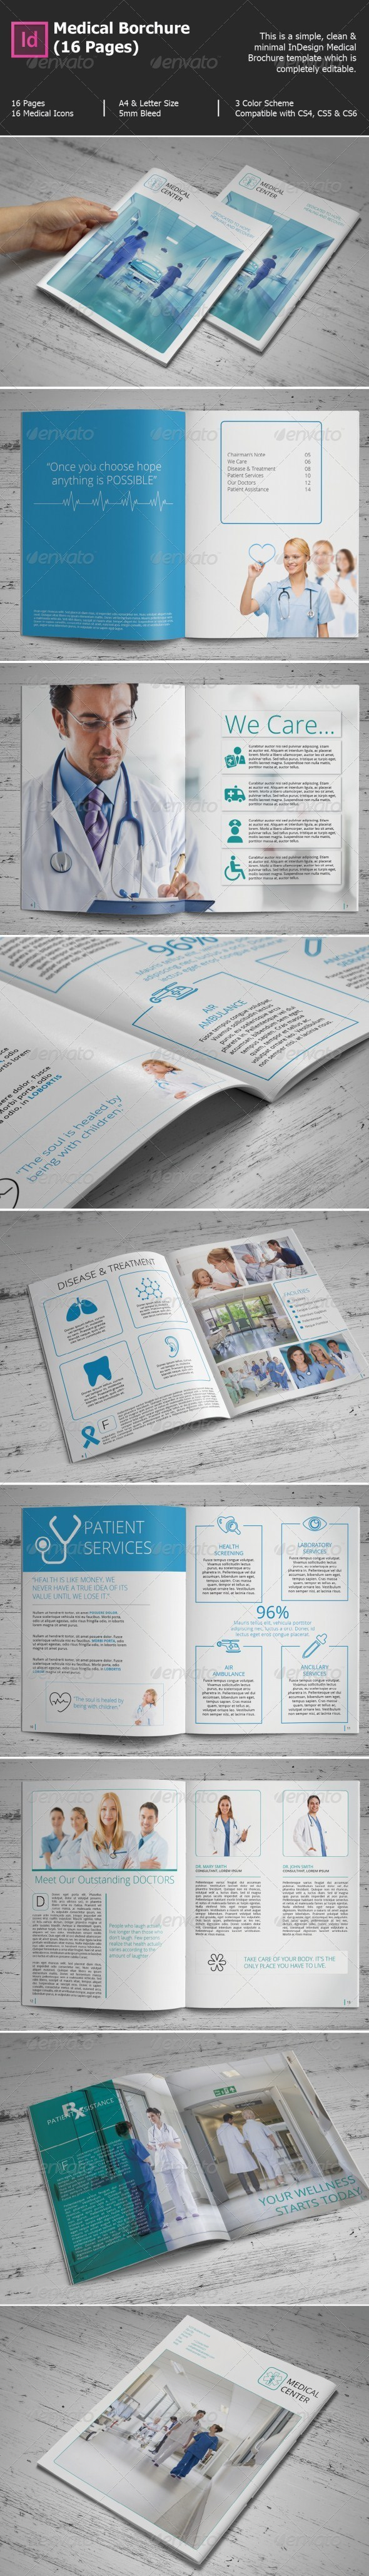 Medical Borchure (16 Pages) - Informational Brochures